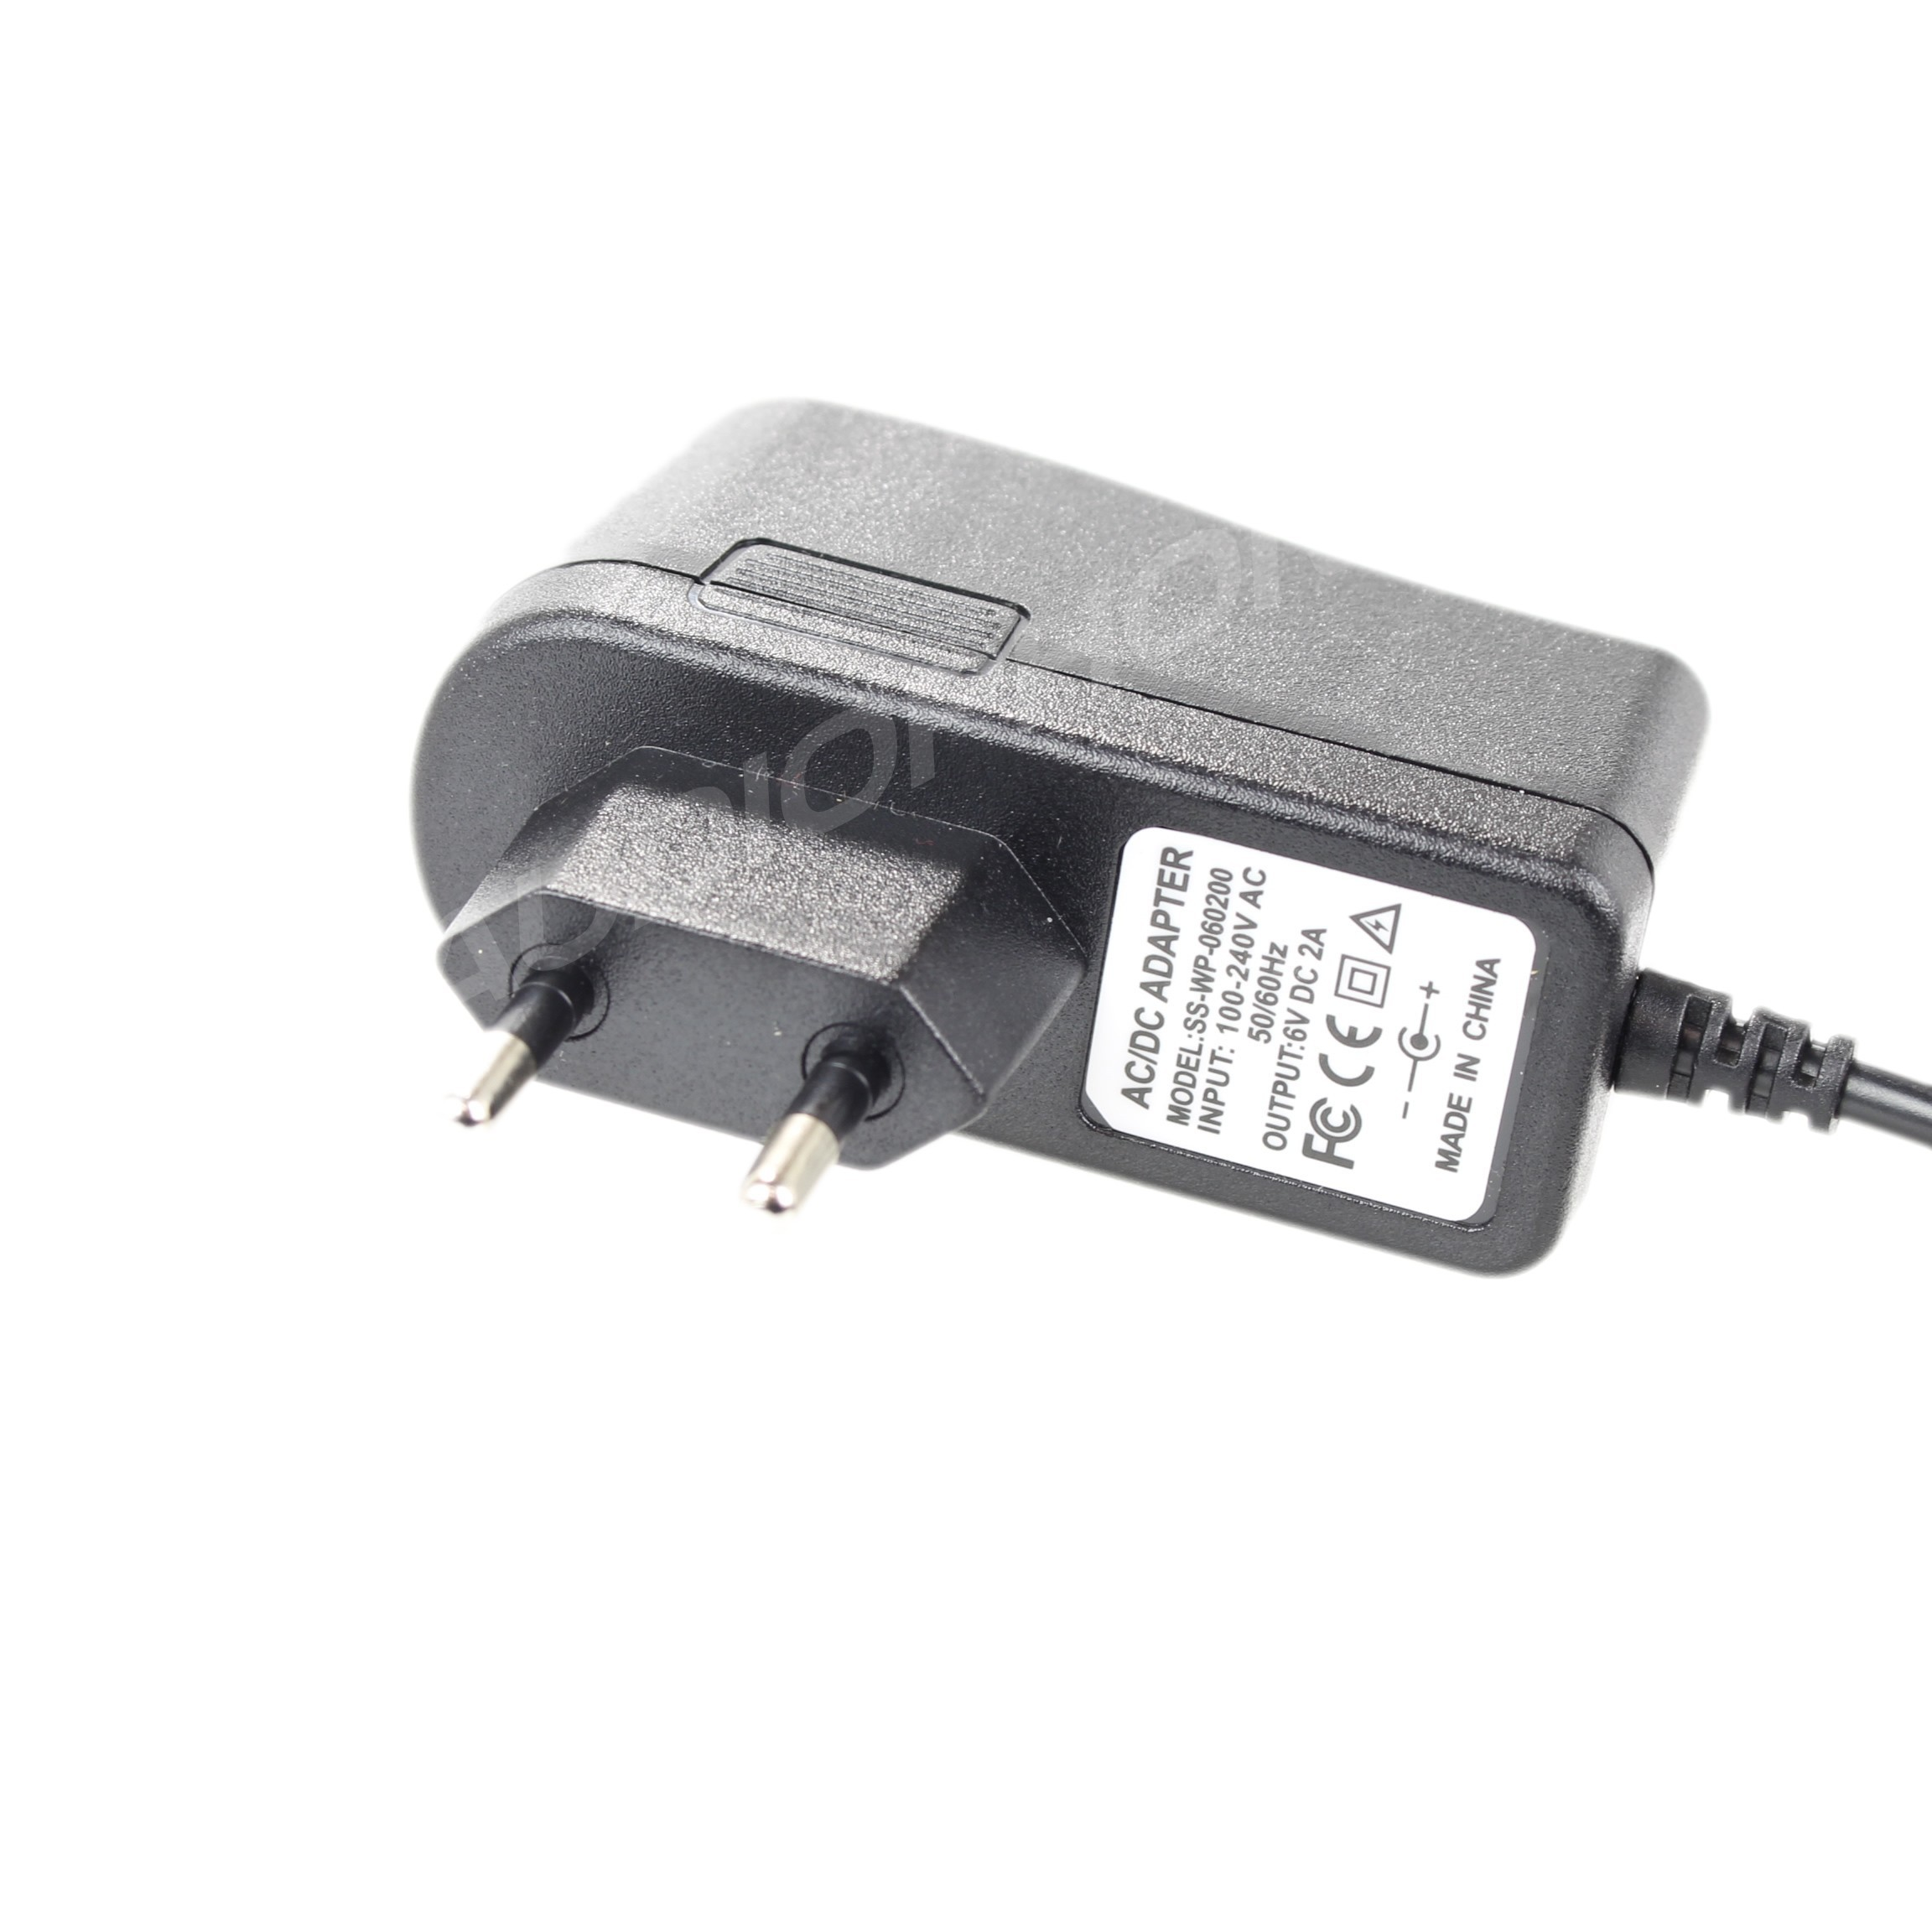 power supply adaptator 100-240V to 6V 2A DC